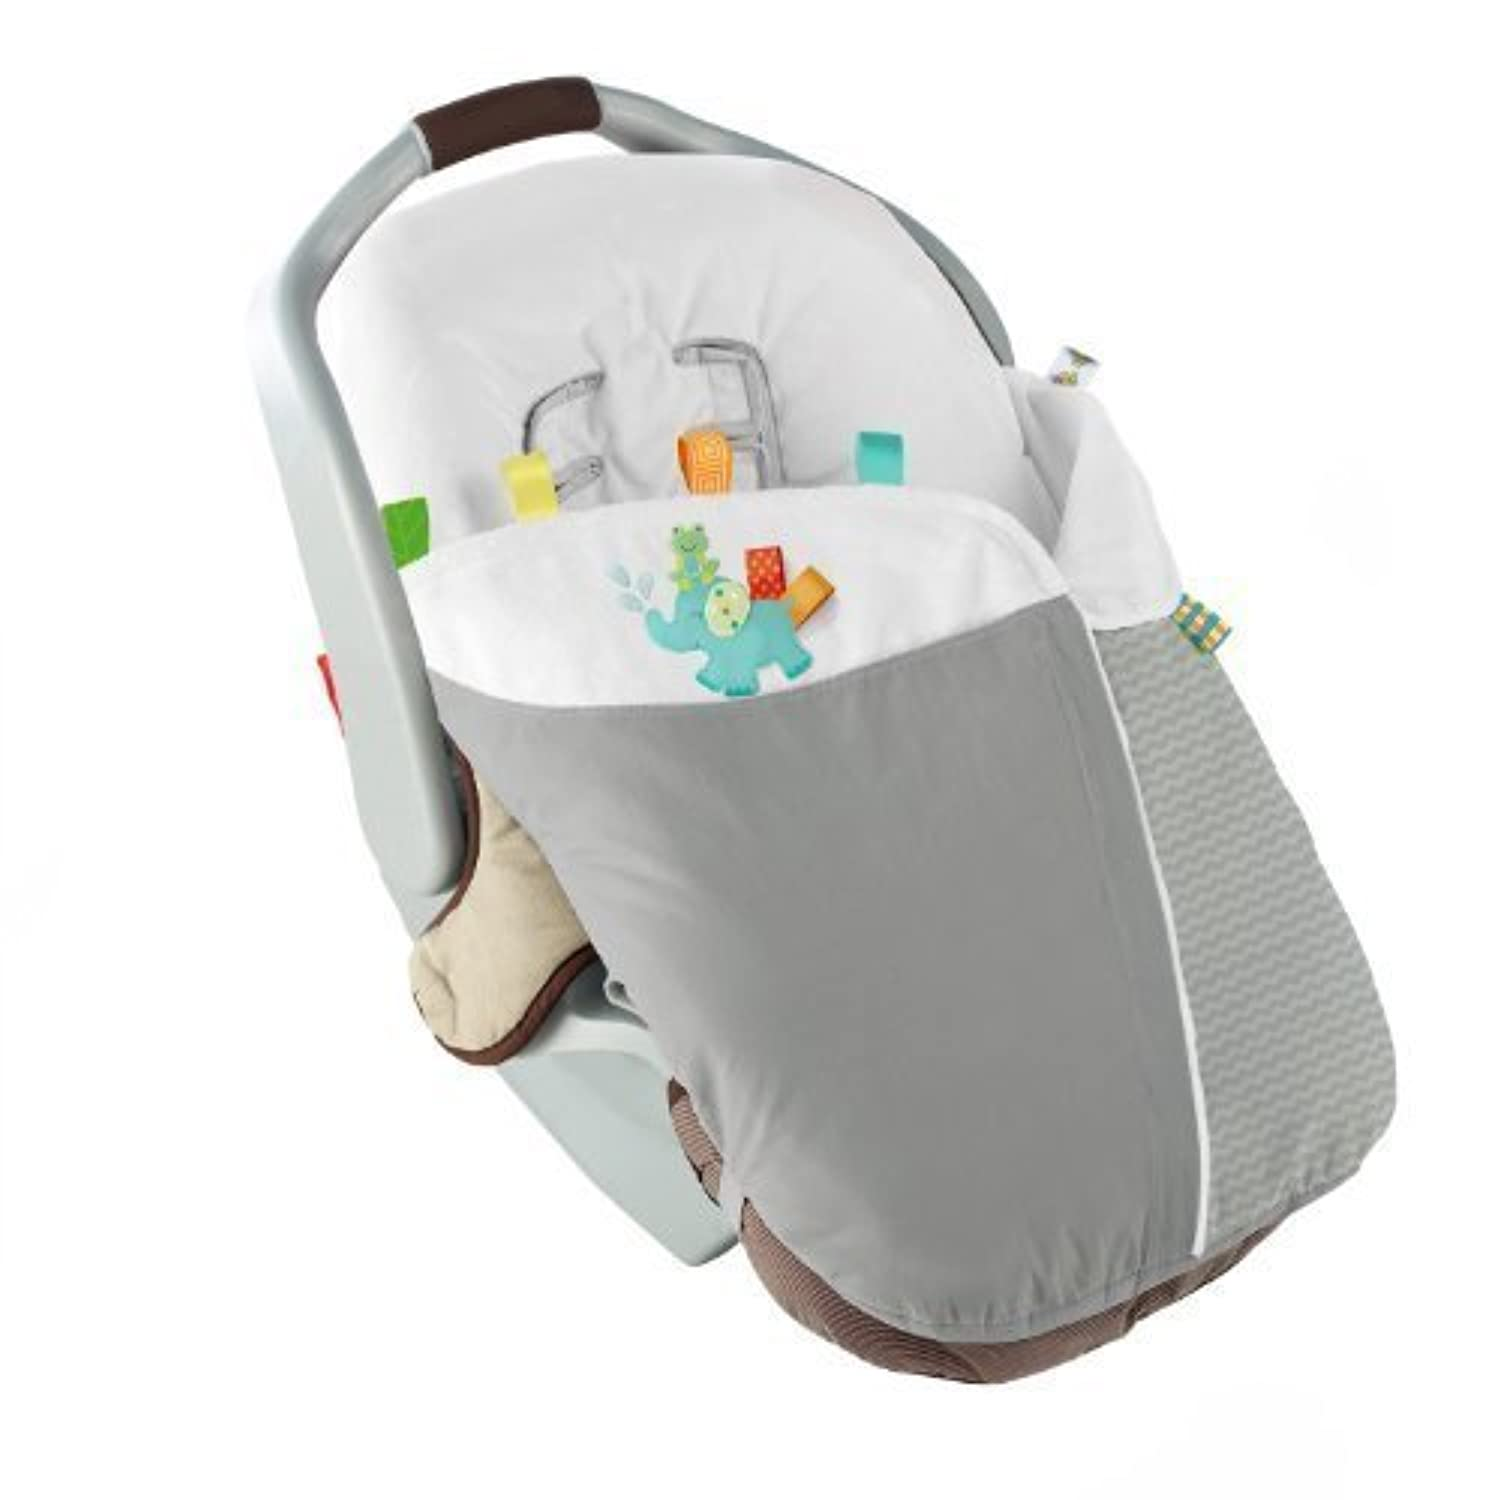 Taggies Tag Snuggle N Stroll Carrier Blanket, Neutral (Discontinued by Manufacturer) by Taggies [並行輸入品]